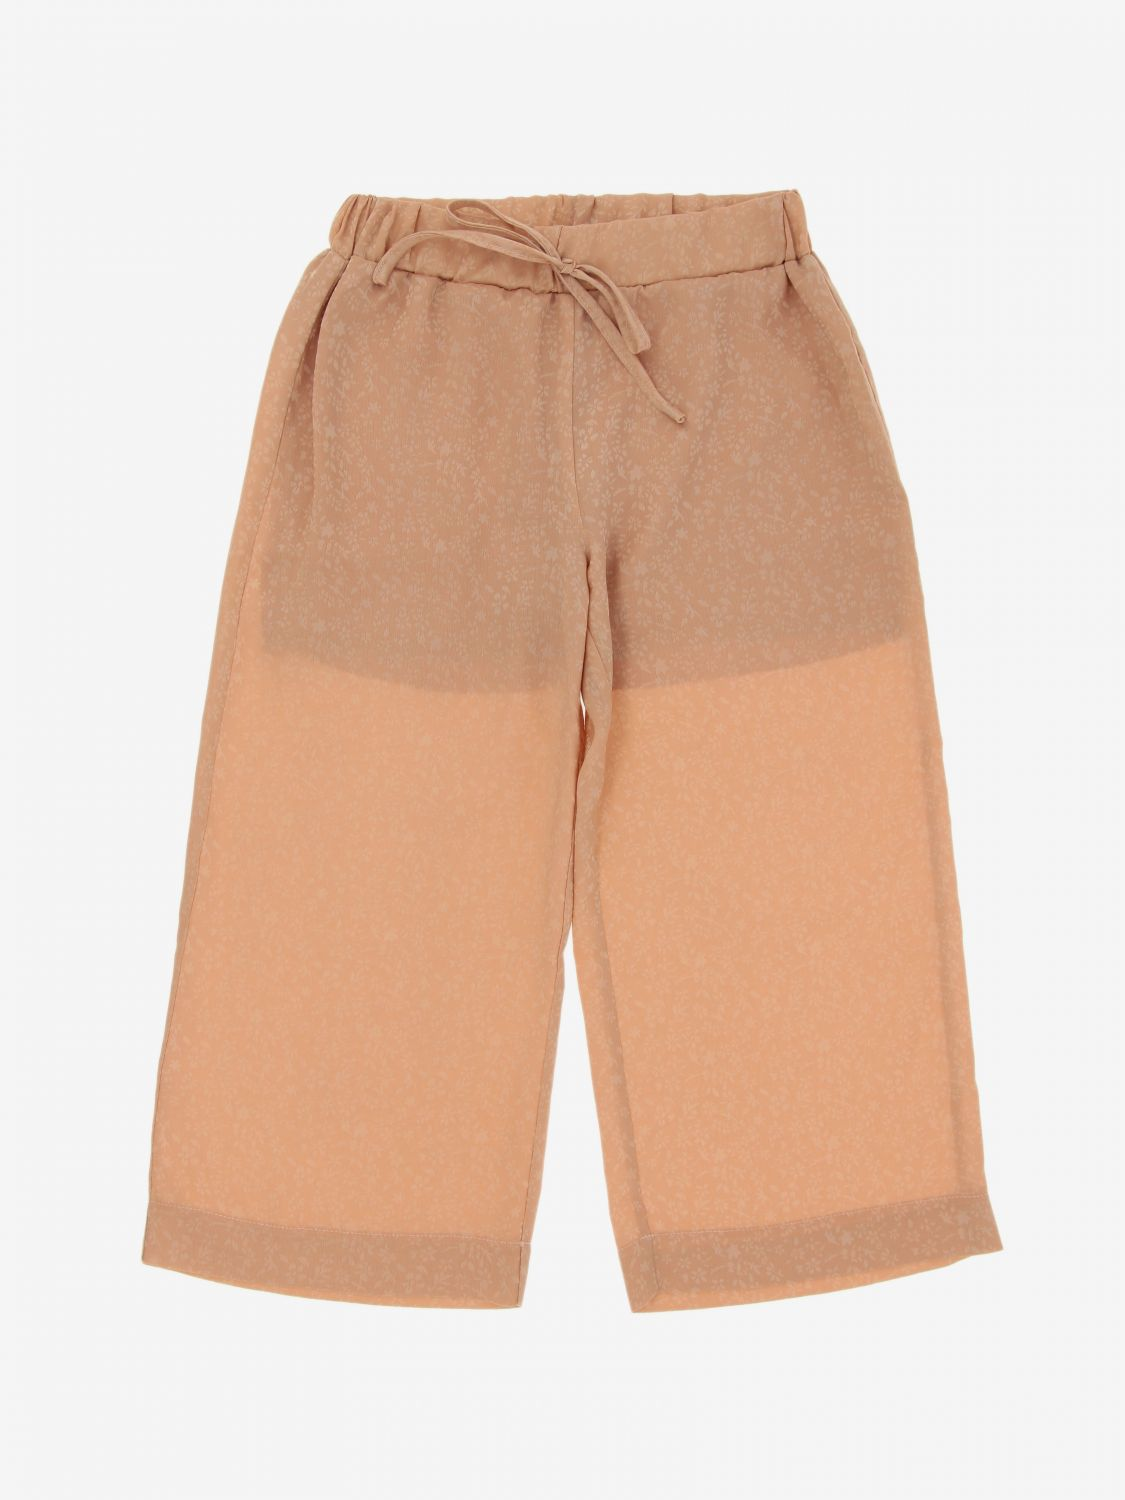 Trousers Caffe' D'orzo: Trousers kids Caffe' D'orzo milk 1